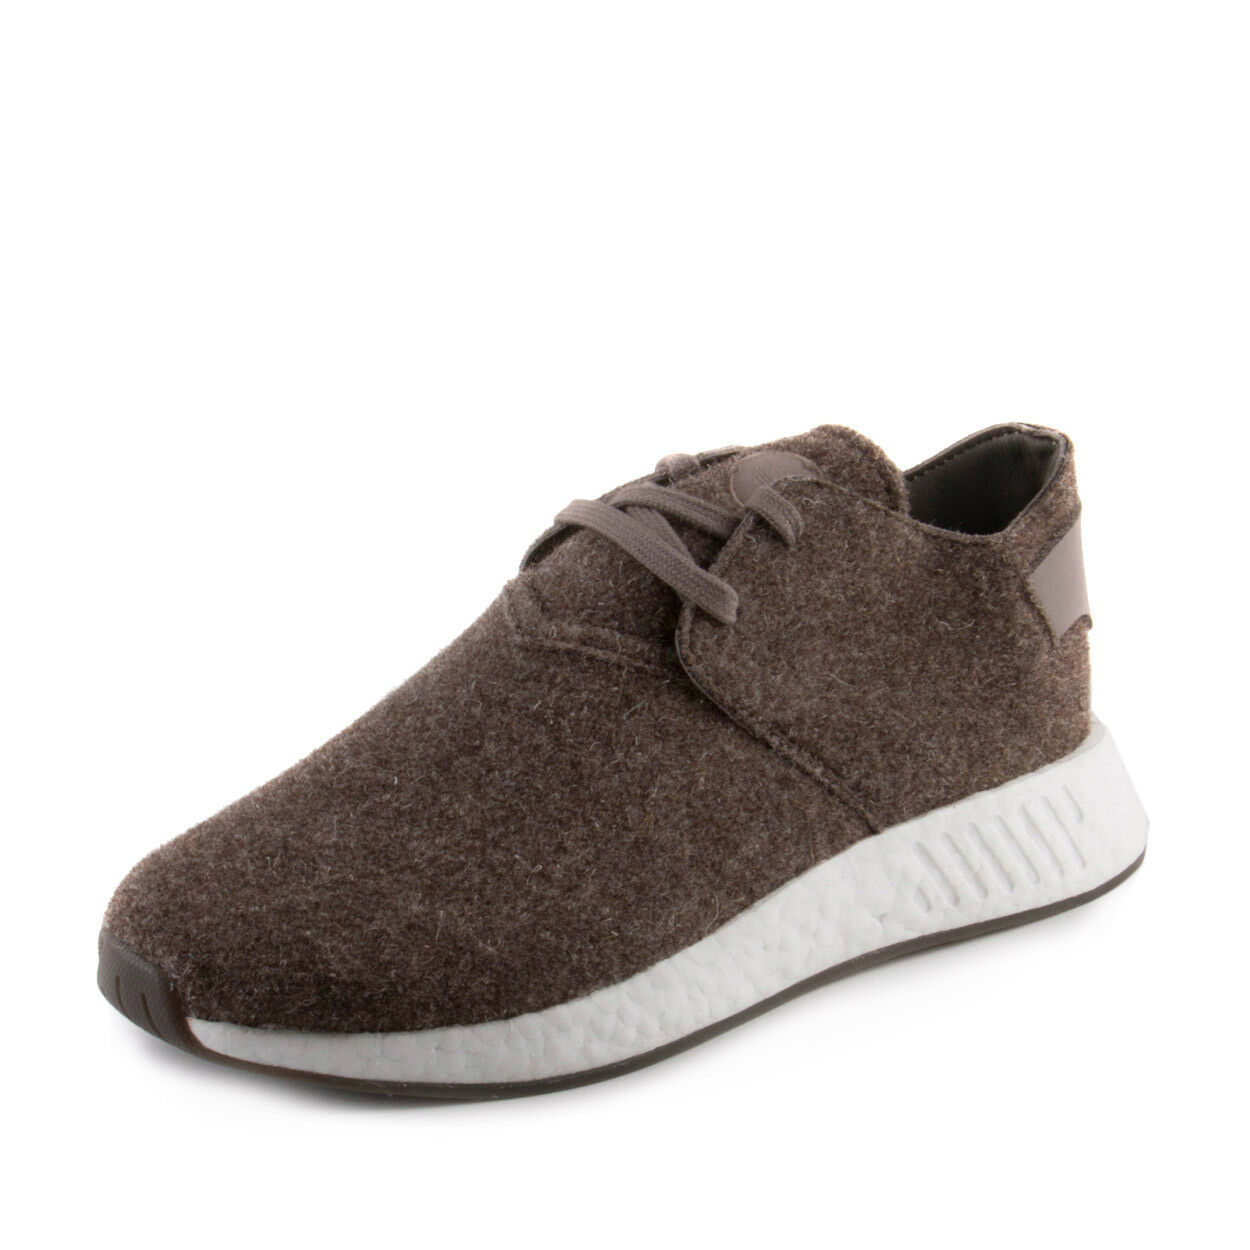 Adidas Mens Wings + Horns NMD C2 Chukka WH Brown CG3781 Wool